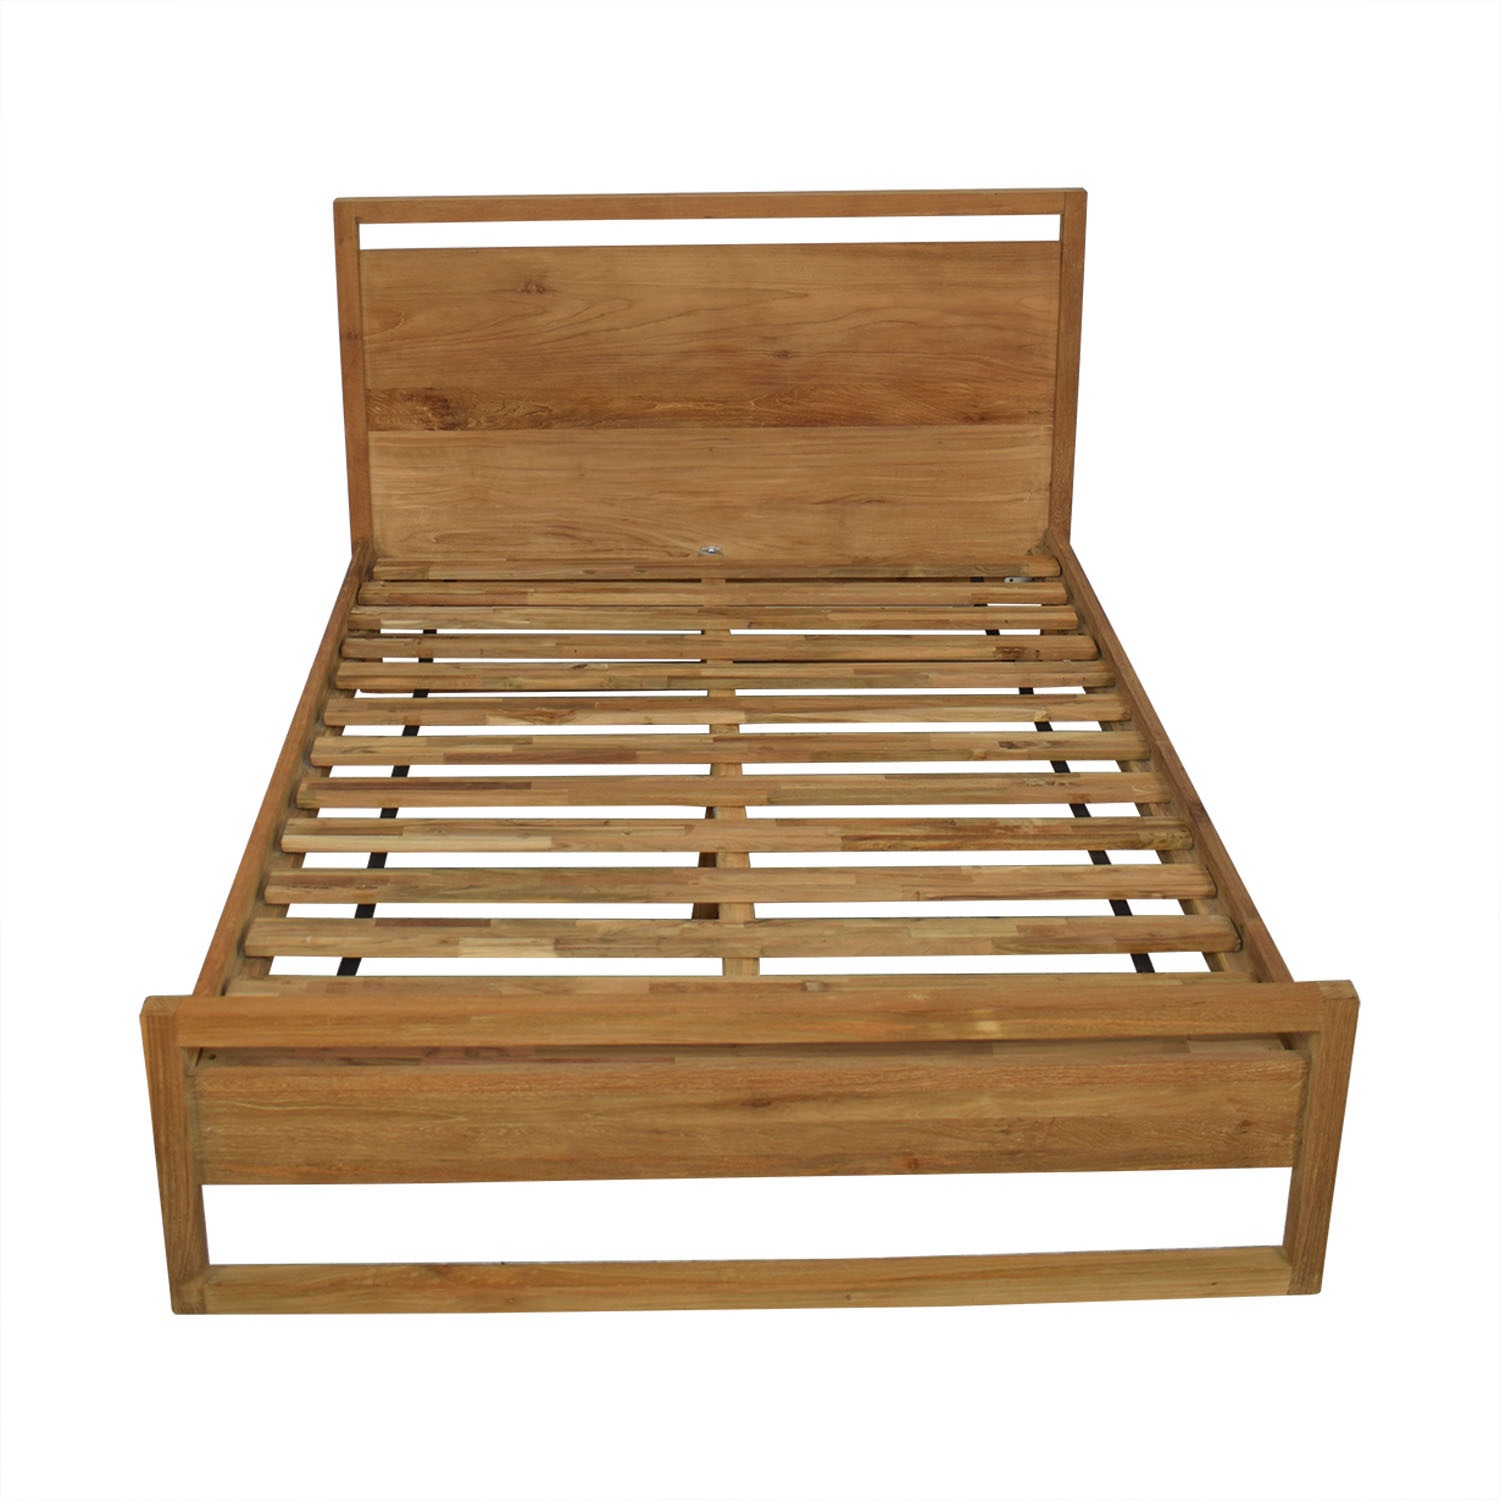 Crate & Barrel Crate & Barrel Linea II Queen Bed Frame Beds